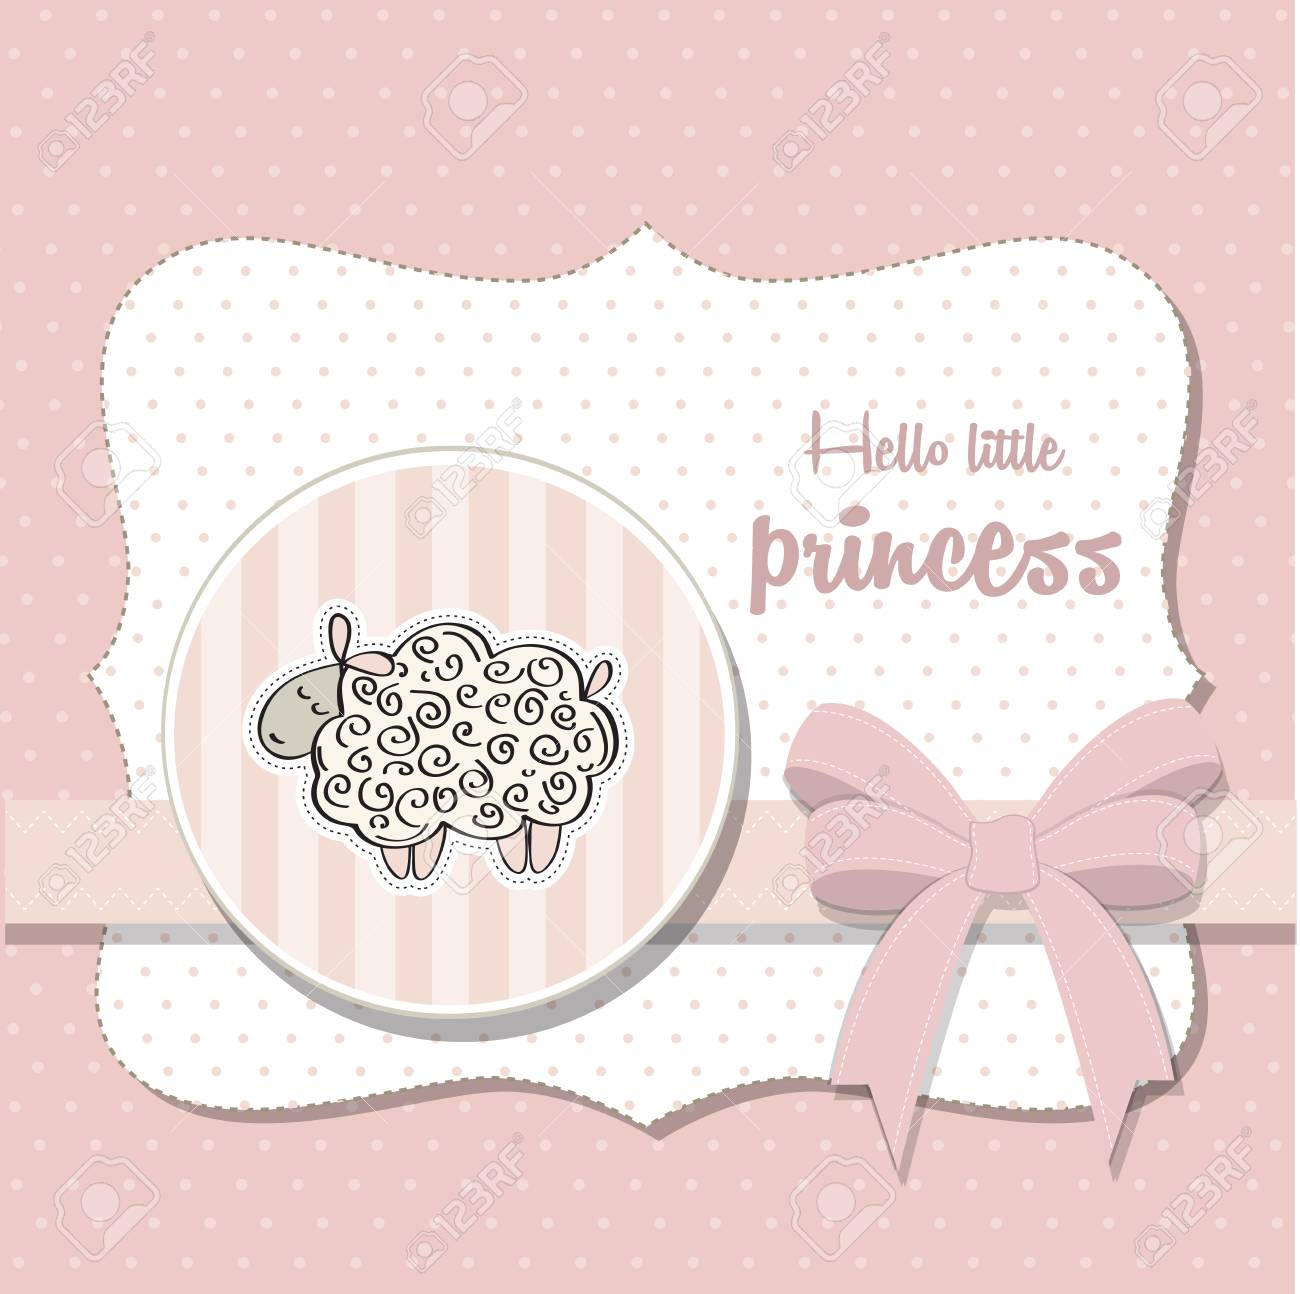 Box Doccia Shabby Chic.Shabby Chic Baby Girl Shower Card Vector Illustration